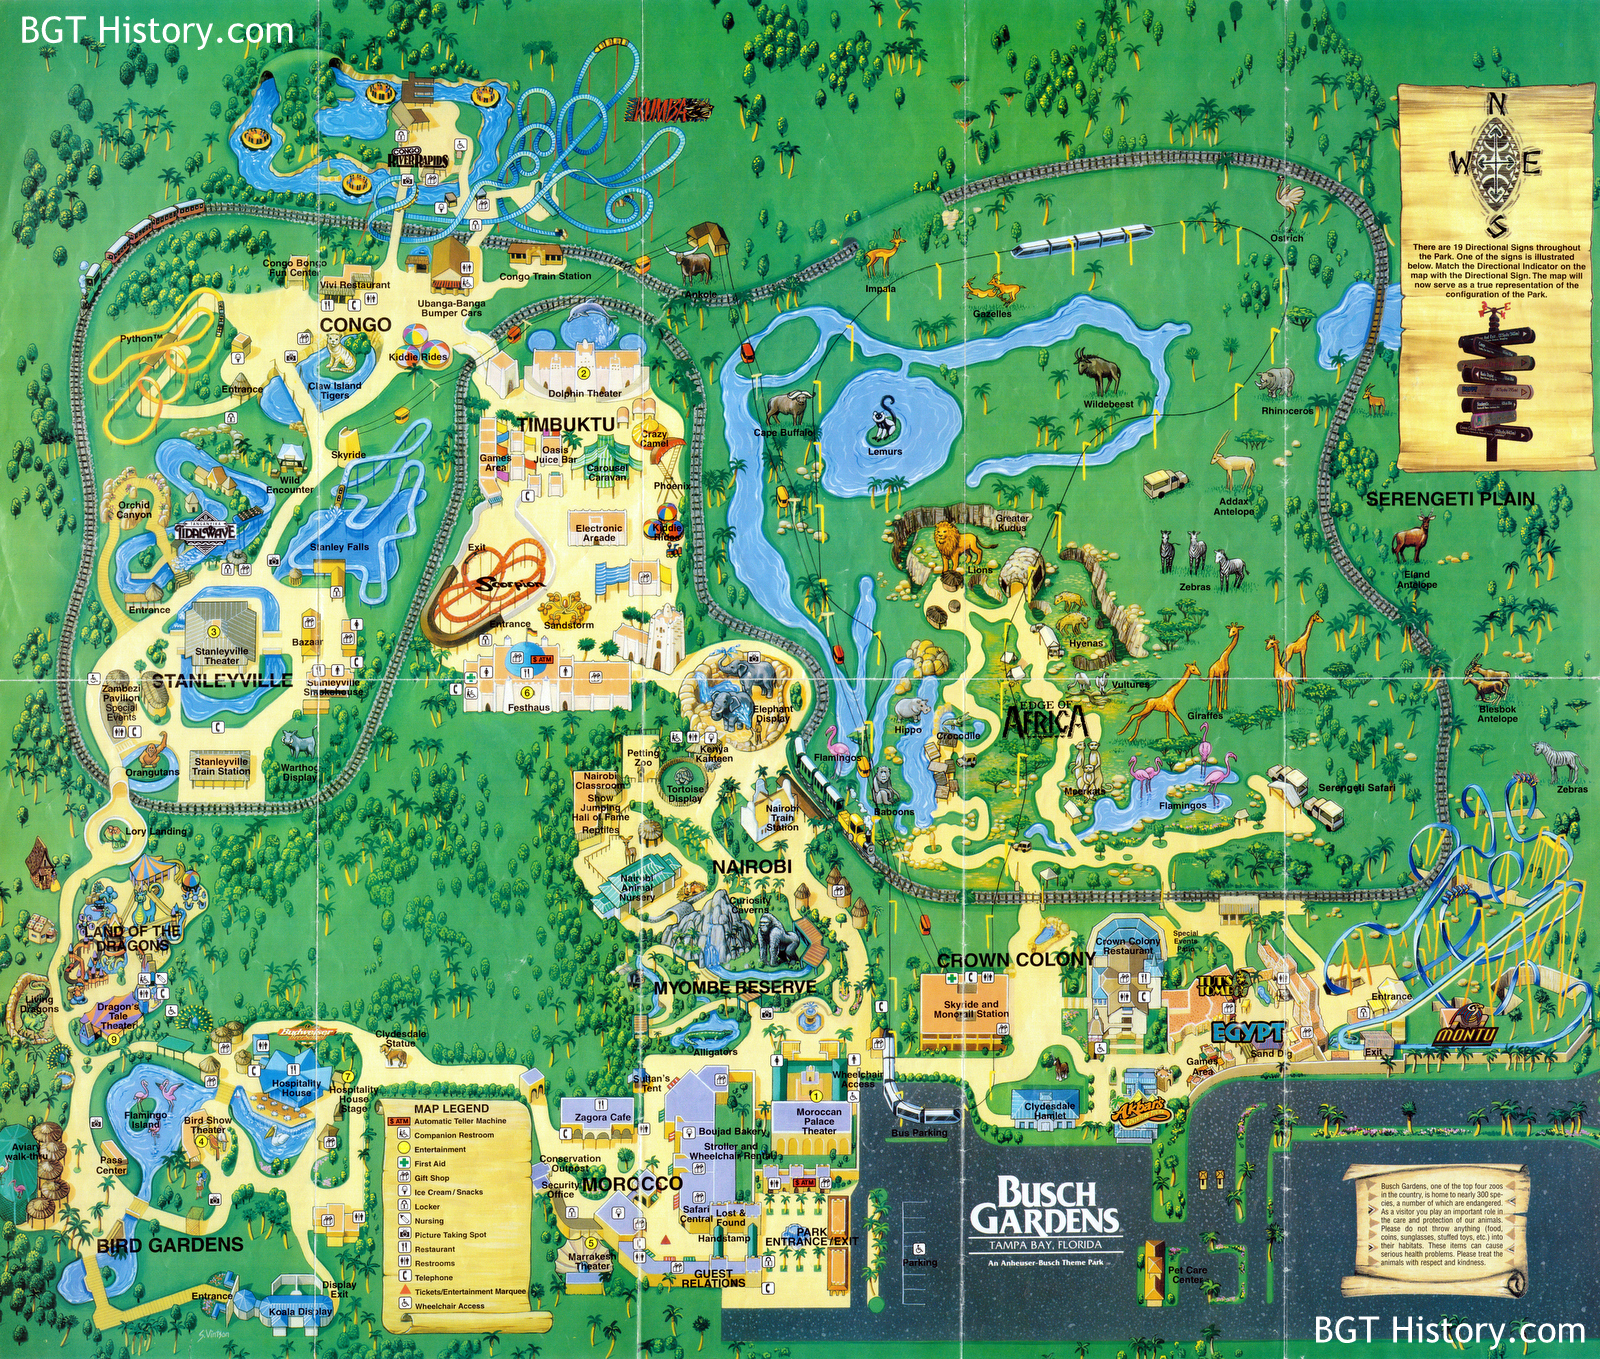 Unique Maps  Bgt History  Busch Gardens Tampa History With Fascinating  With Archaic House Garden Design Also In The Night Garden Cards In Addition Garden Metal Table And Chairs And Hollywood Garden Apartments As Well As Guernsey Garden Centre Additionally Lotus Garden Menu From Bgthistorycom With   Fascinating Maps  Bgt History  Busch Gardens Tampa History With Archaic  And Unique House Garden Design Also In The Night Garden Cards In Addition Garden Metal Table And Chairs From Bgthistorycom